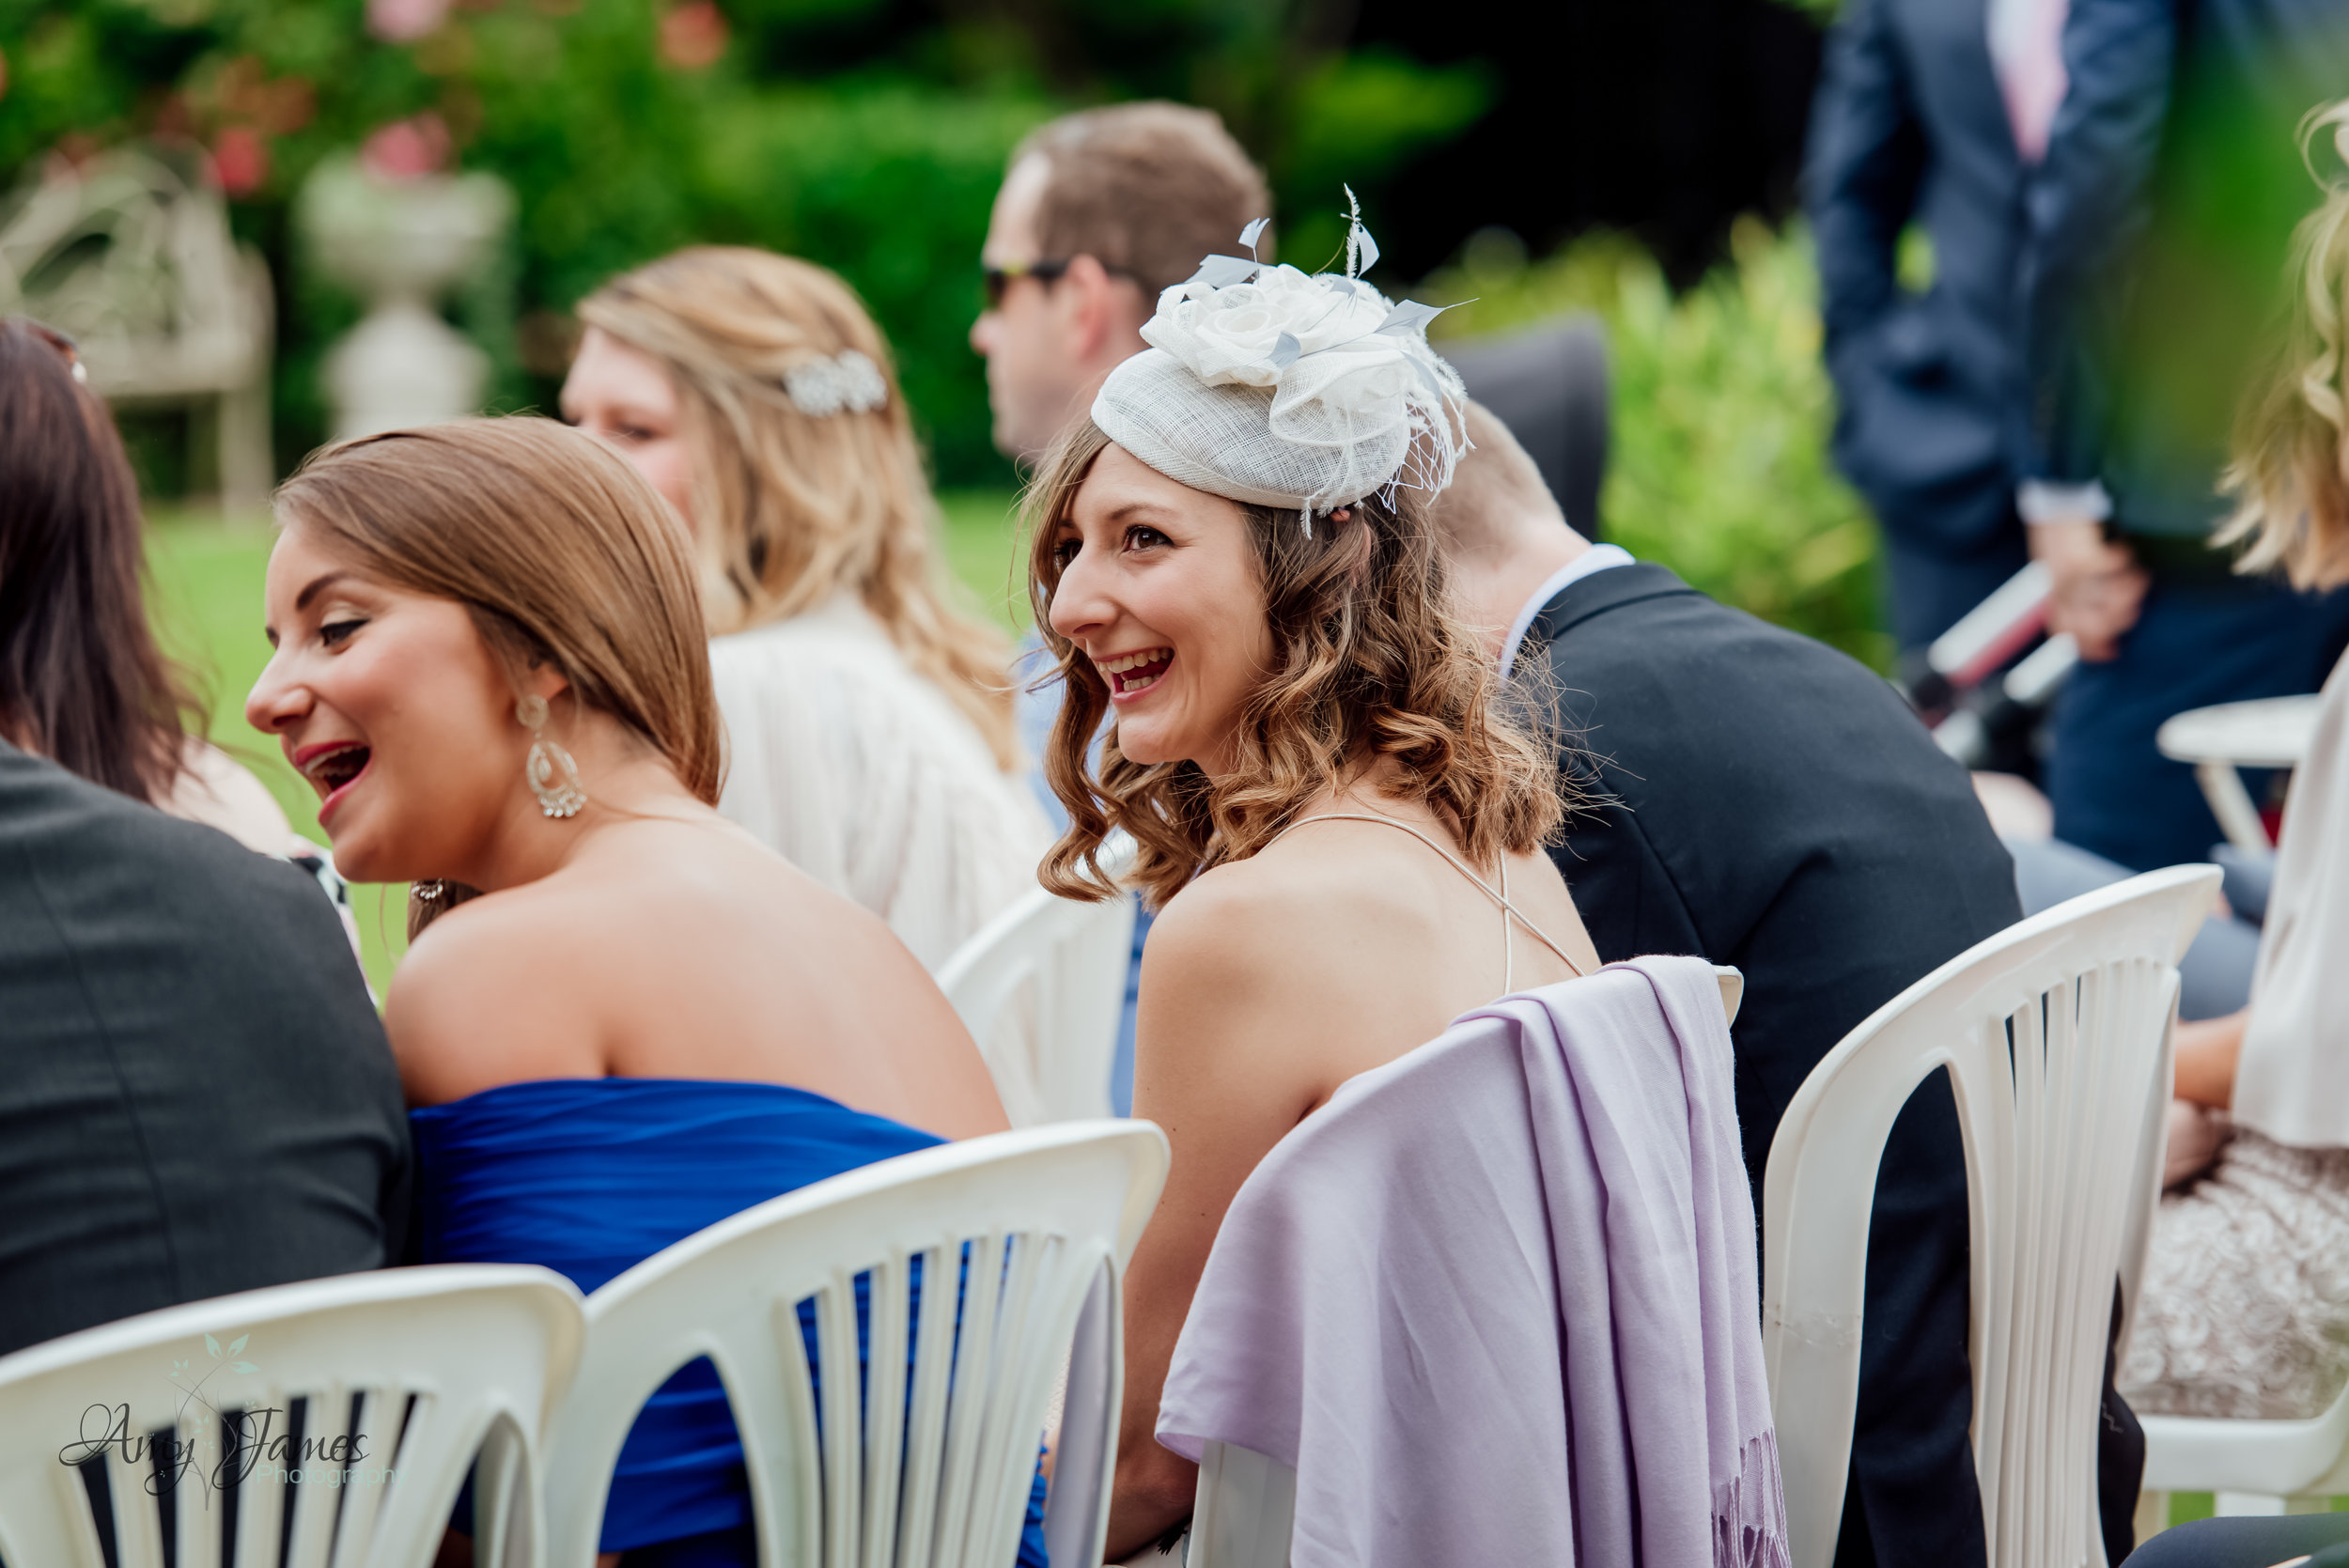 Guests at an outdoor garden wedding ceremony at Taplins Place Hampshire - Amy James photography - Documentary wedding photography